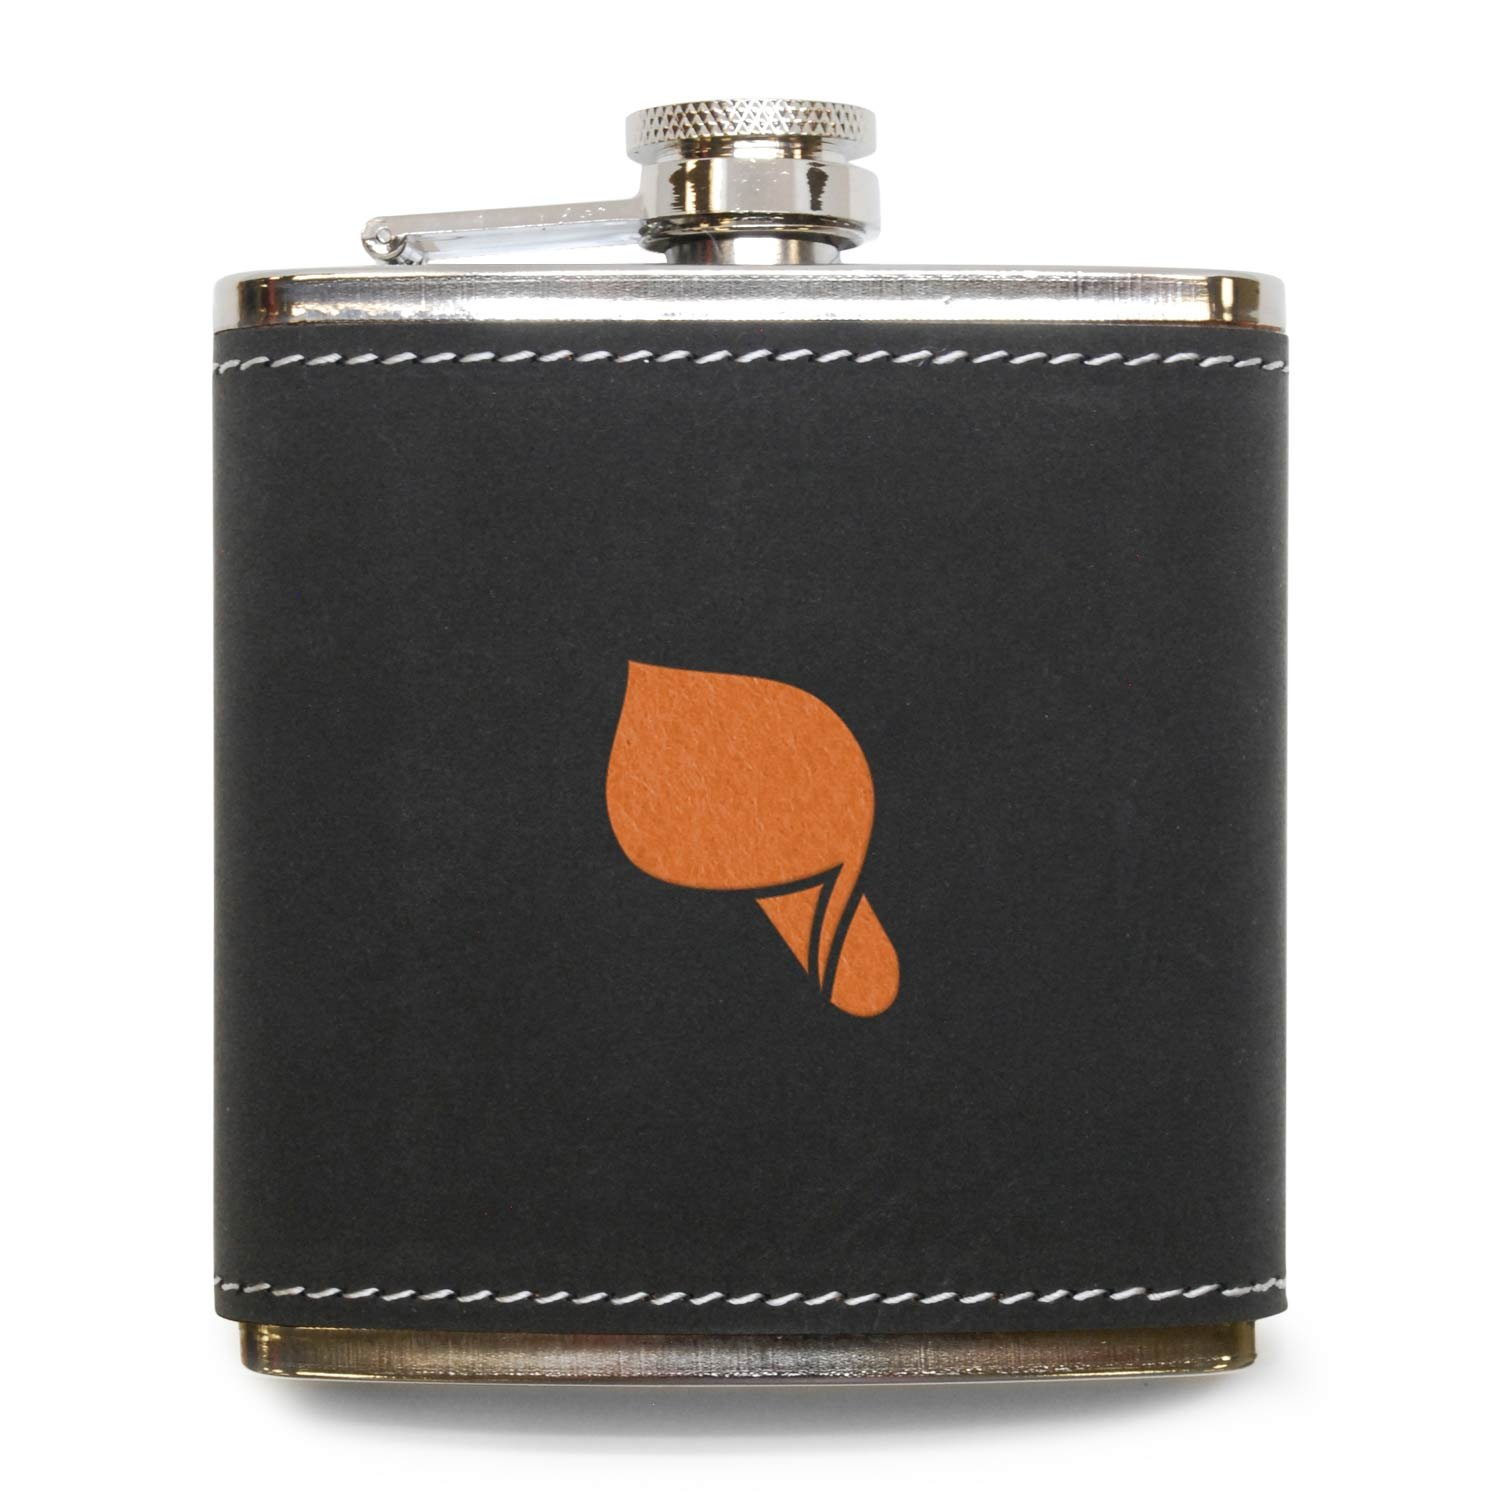 MODERN GOODS SHOP Callalily Flask - Stainless Steel Body With Grey Leather Cover - 6 Oz Leather Hip Flask - Made In USA by Modern Accessories Company